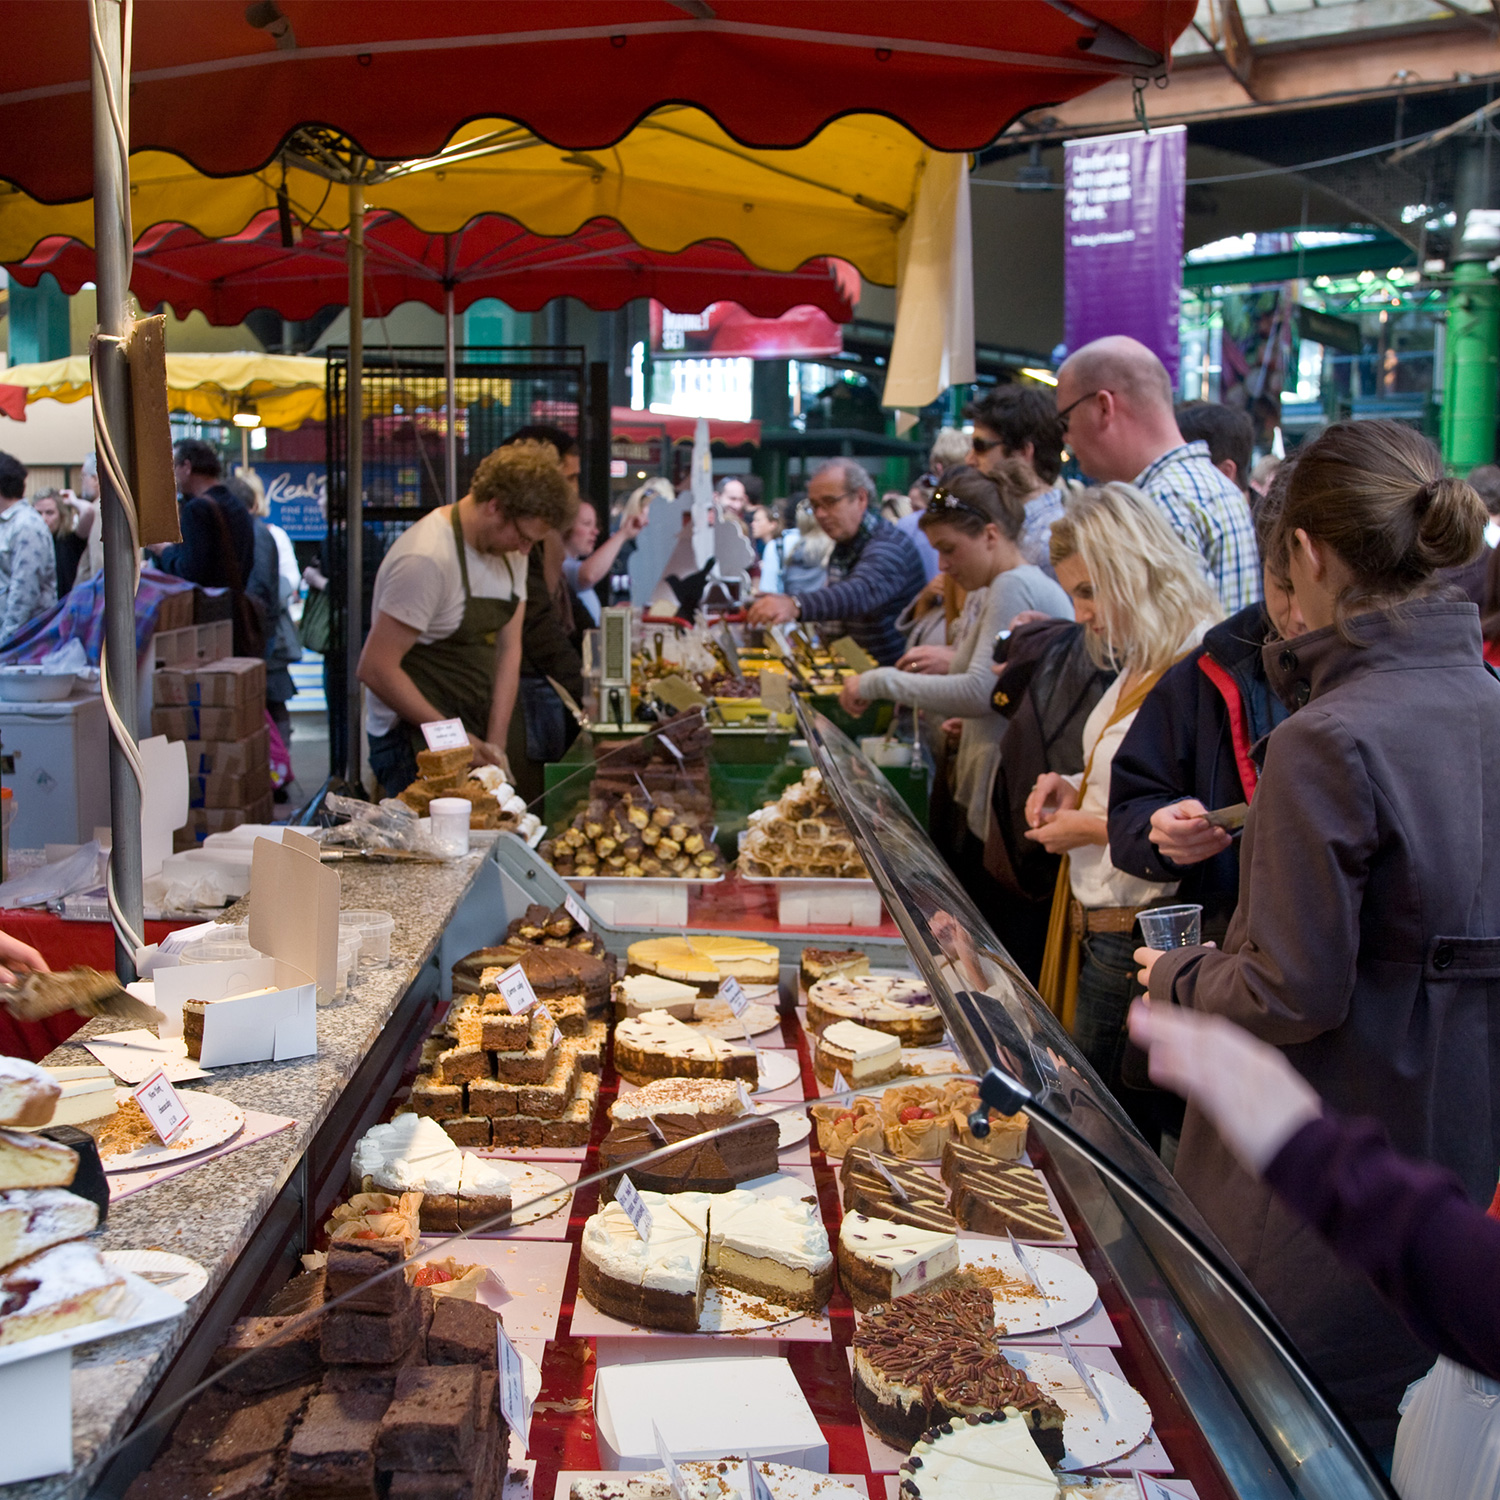 Eat. Drink. Repeat at these food markets